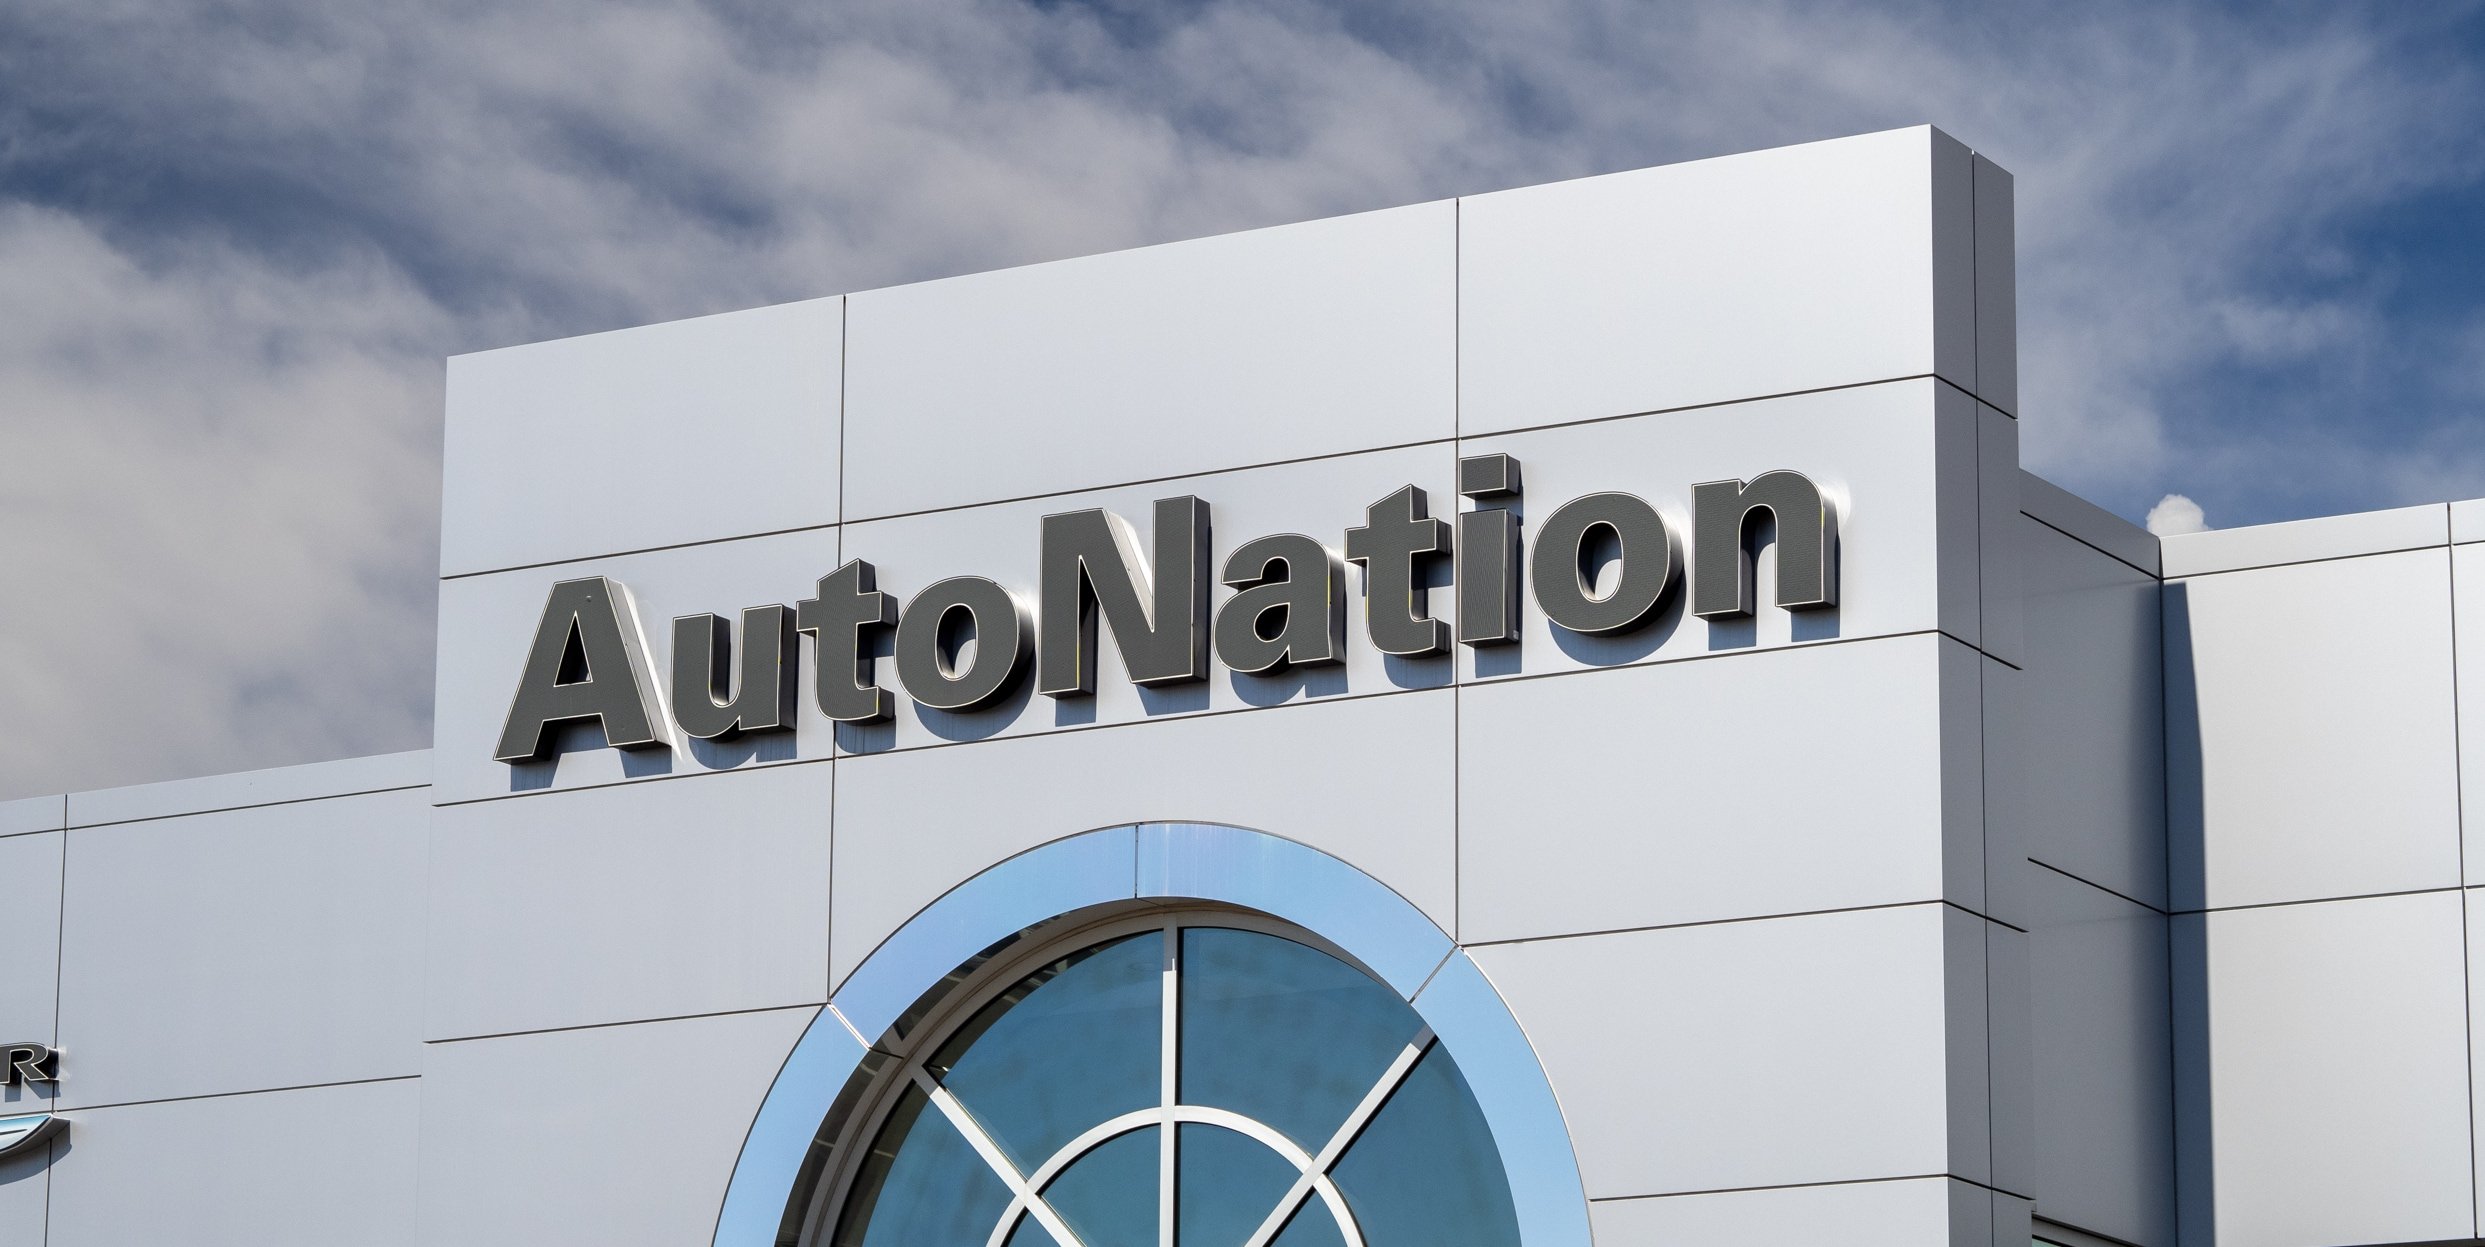 Exterior view of Autonation Chrysler Jeep Broadway